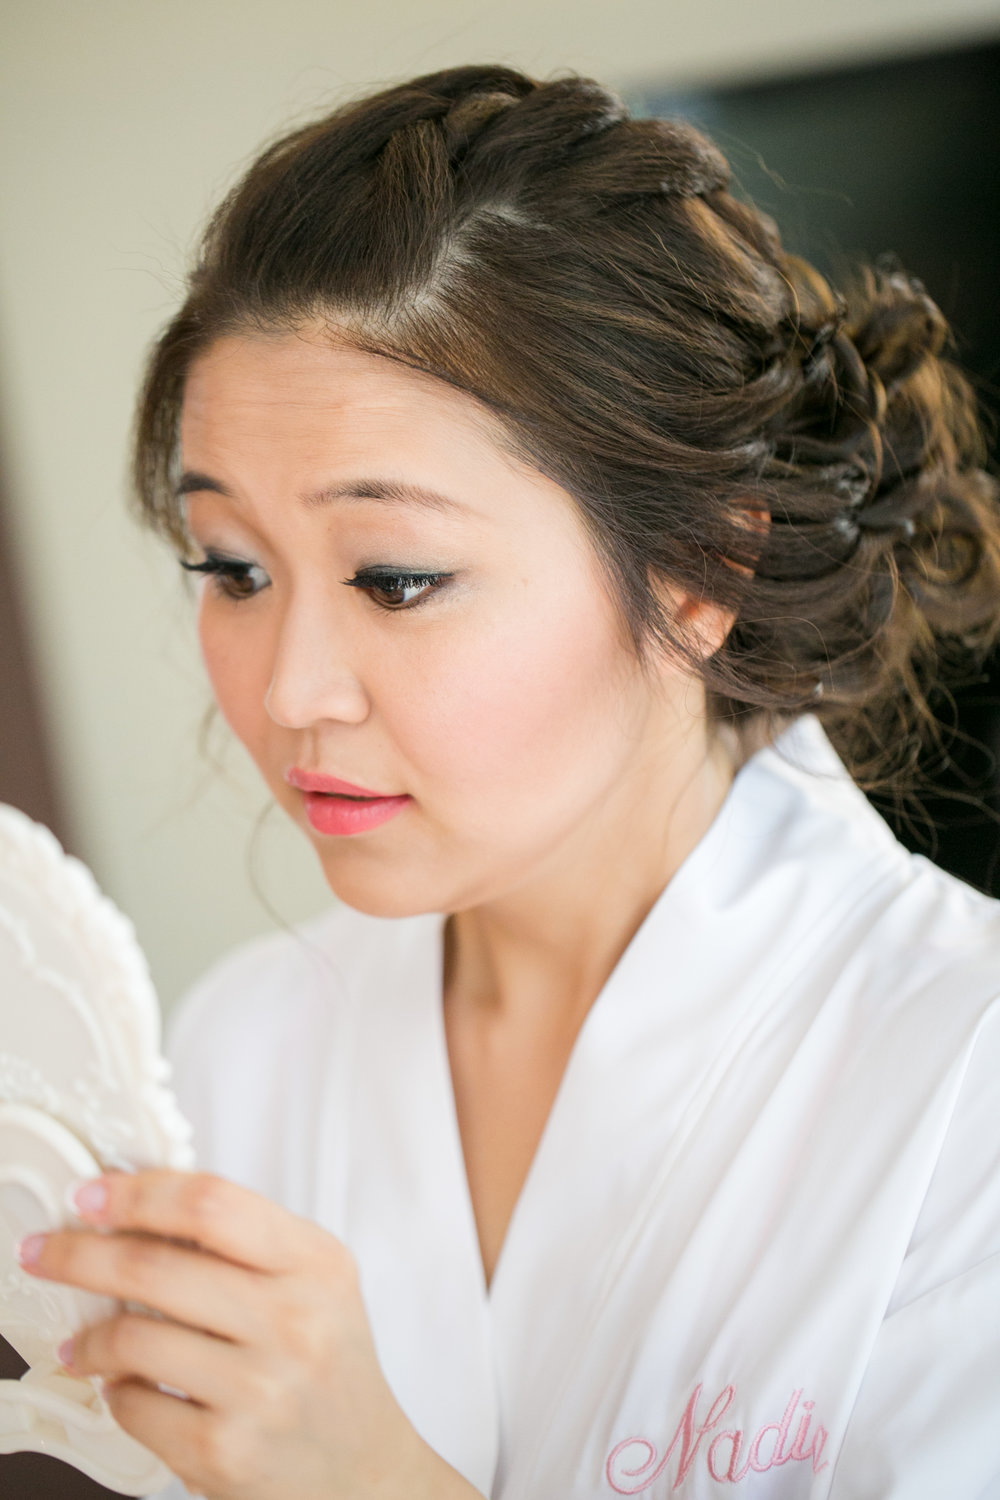 Bride checking makeup in mirror